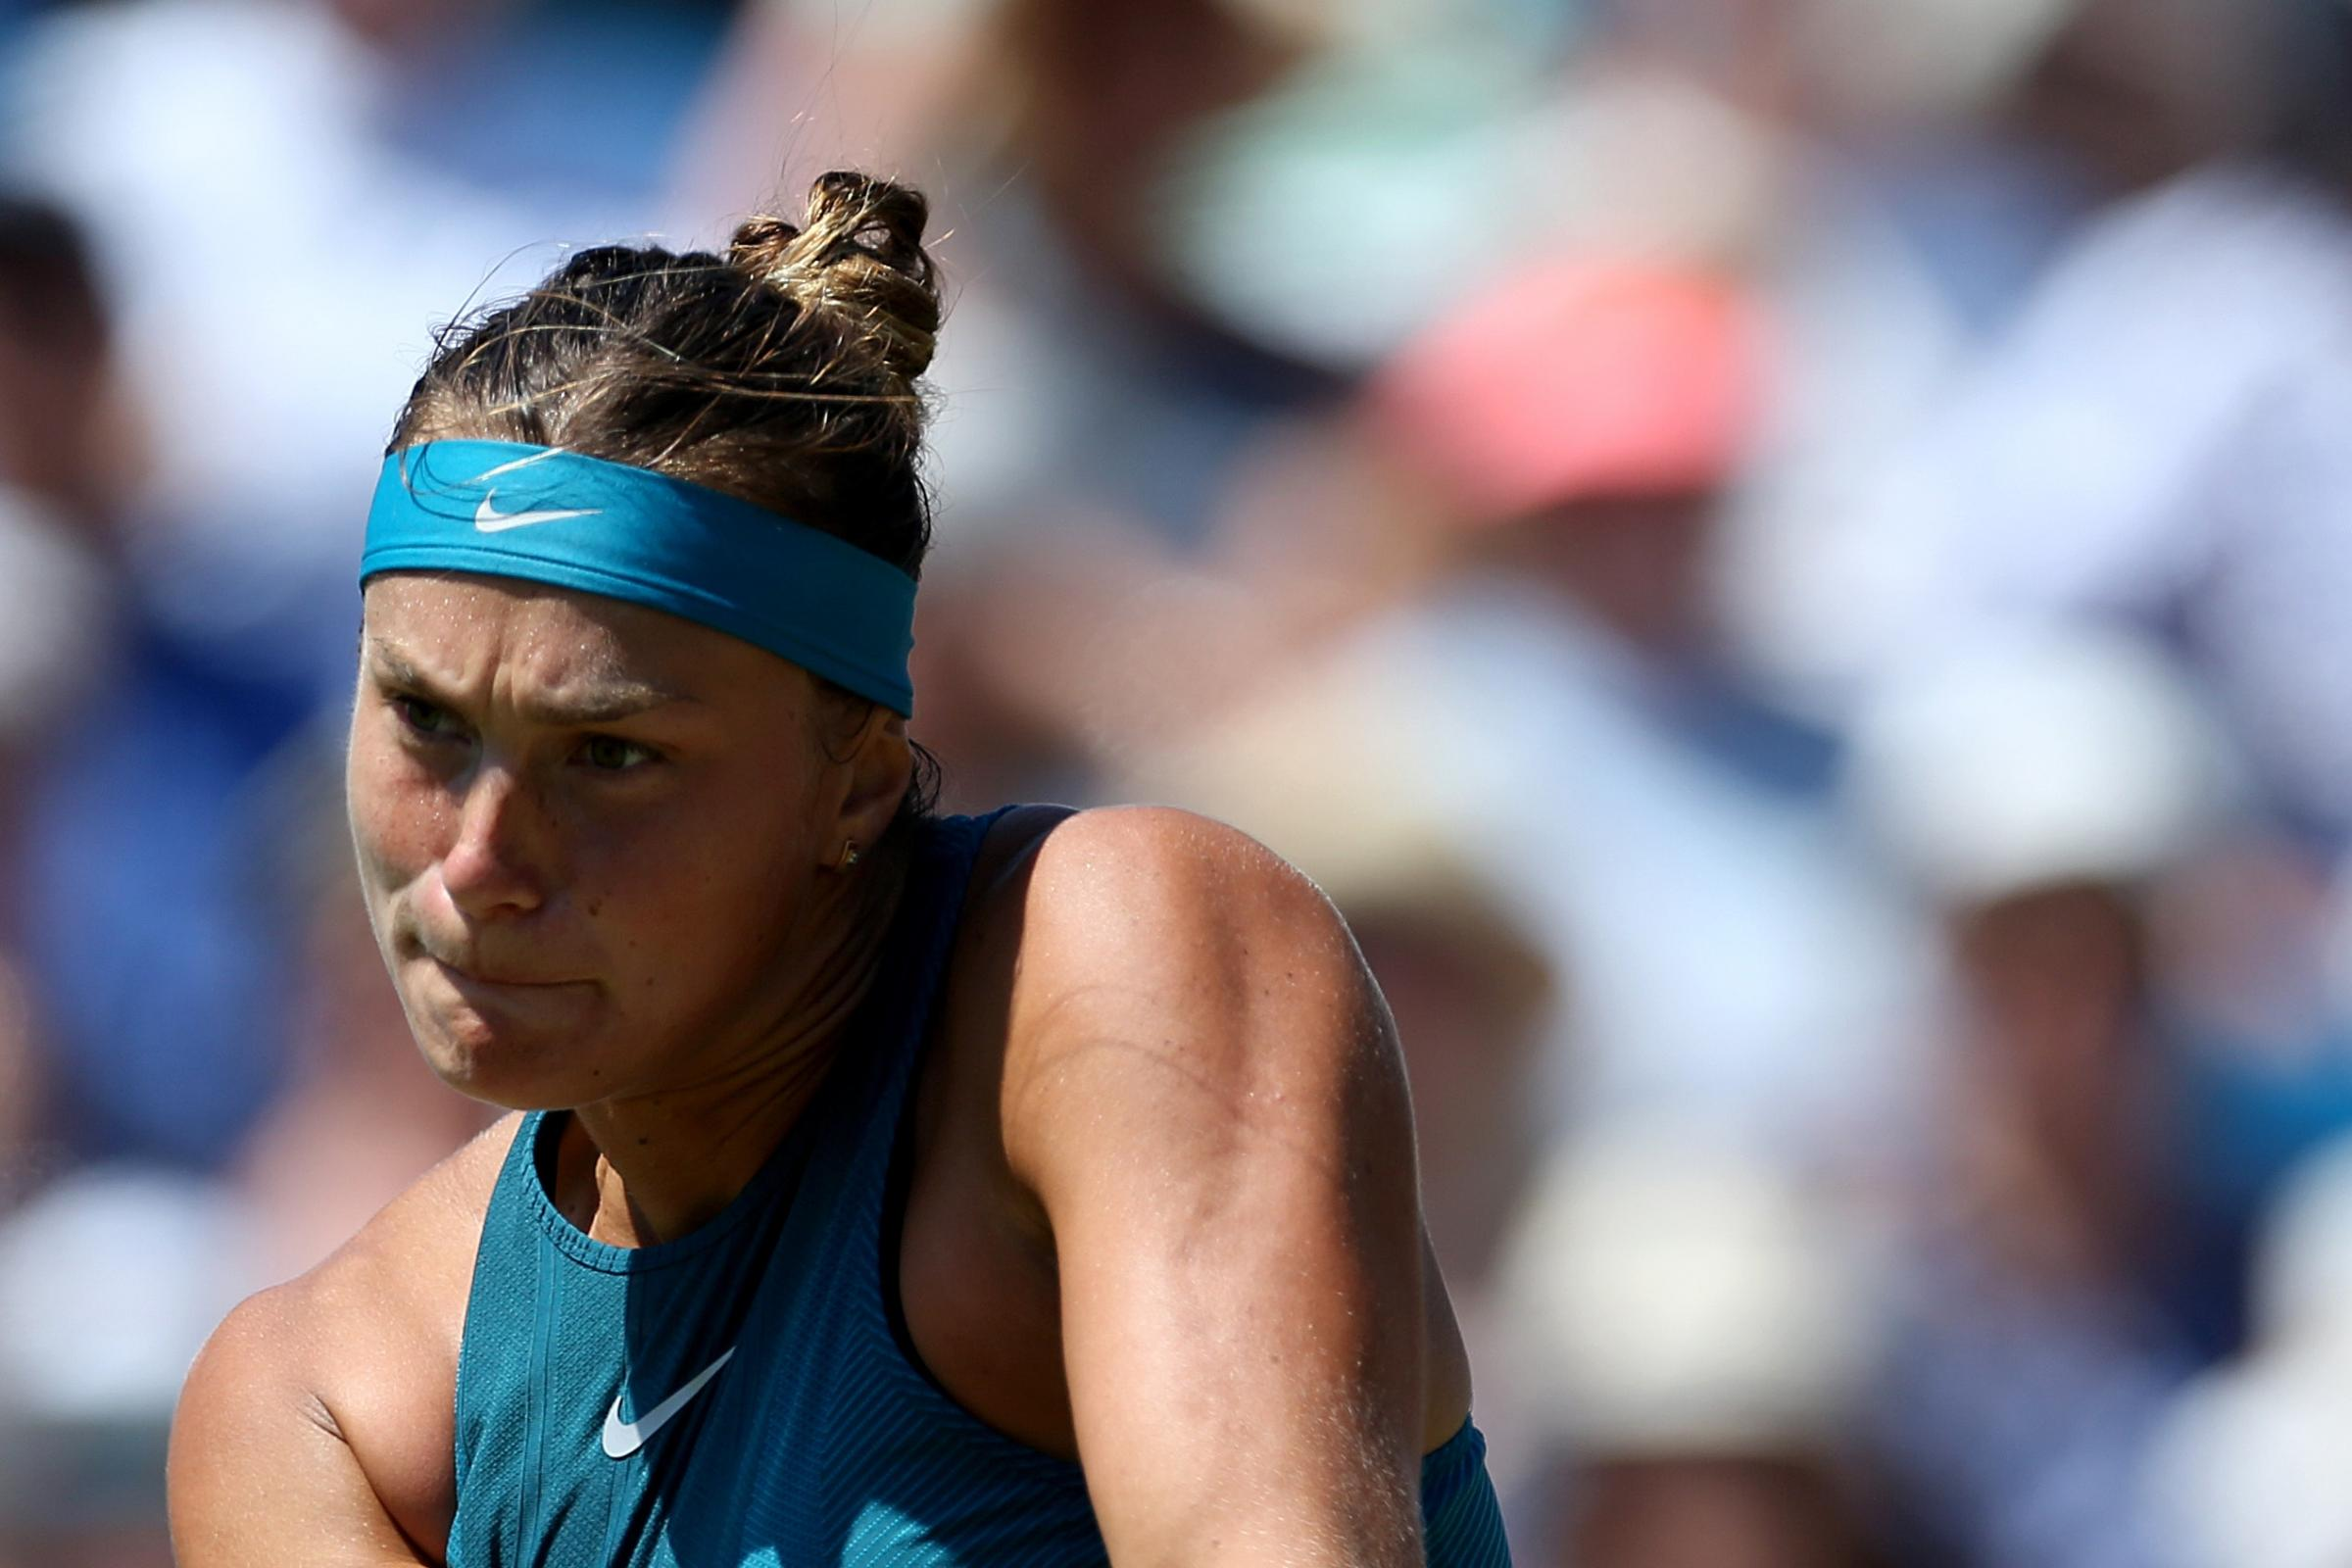 Aryna Sabalenka is one of the hottest young talents in tennis